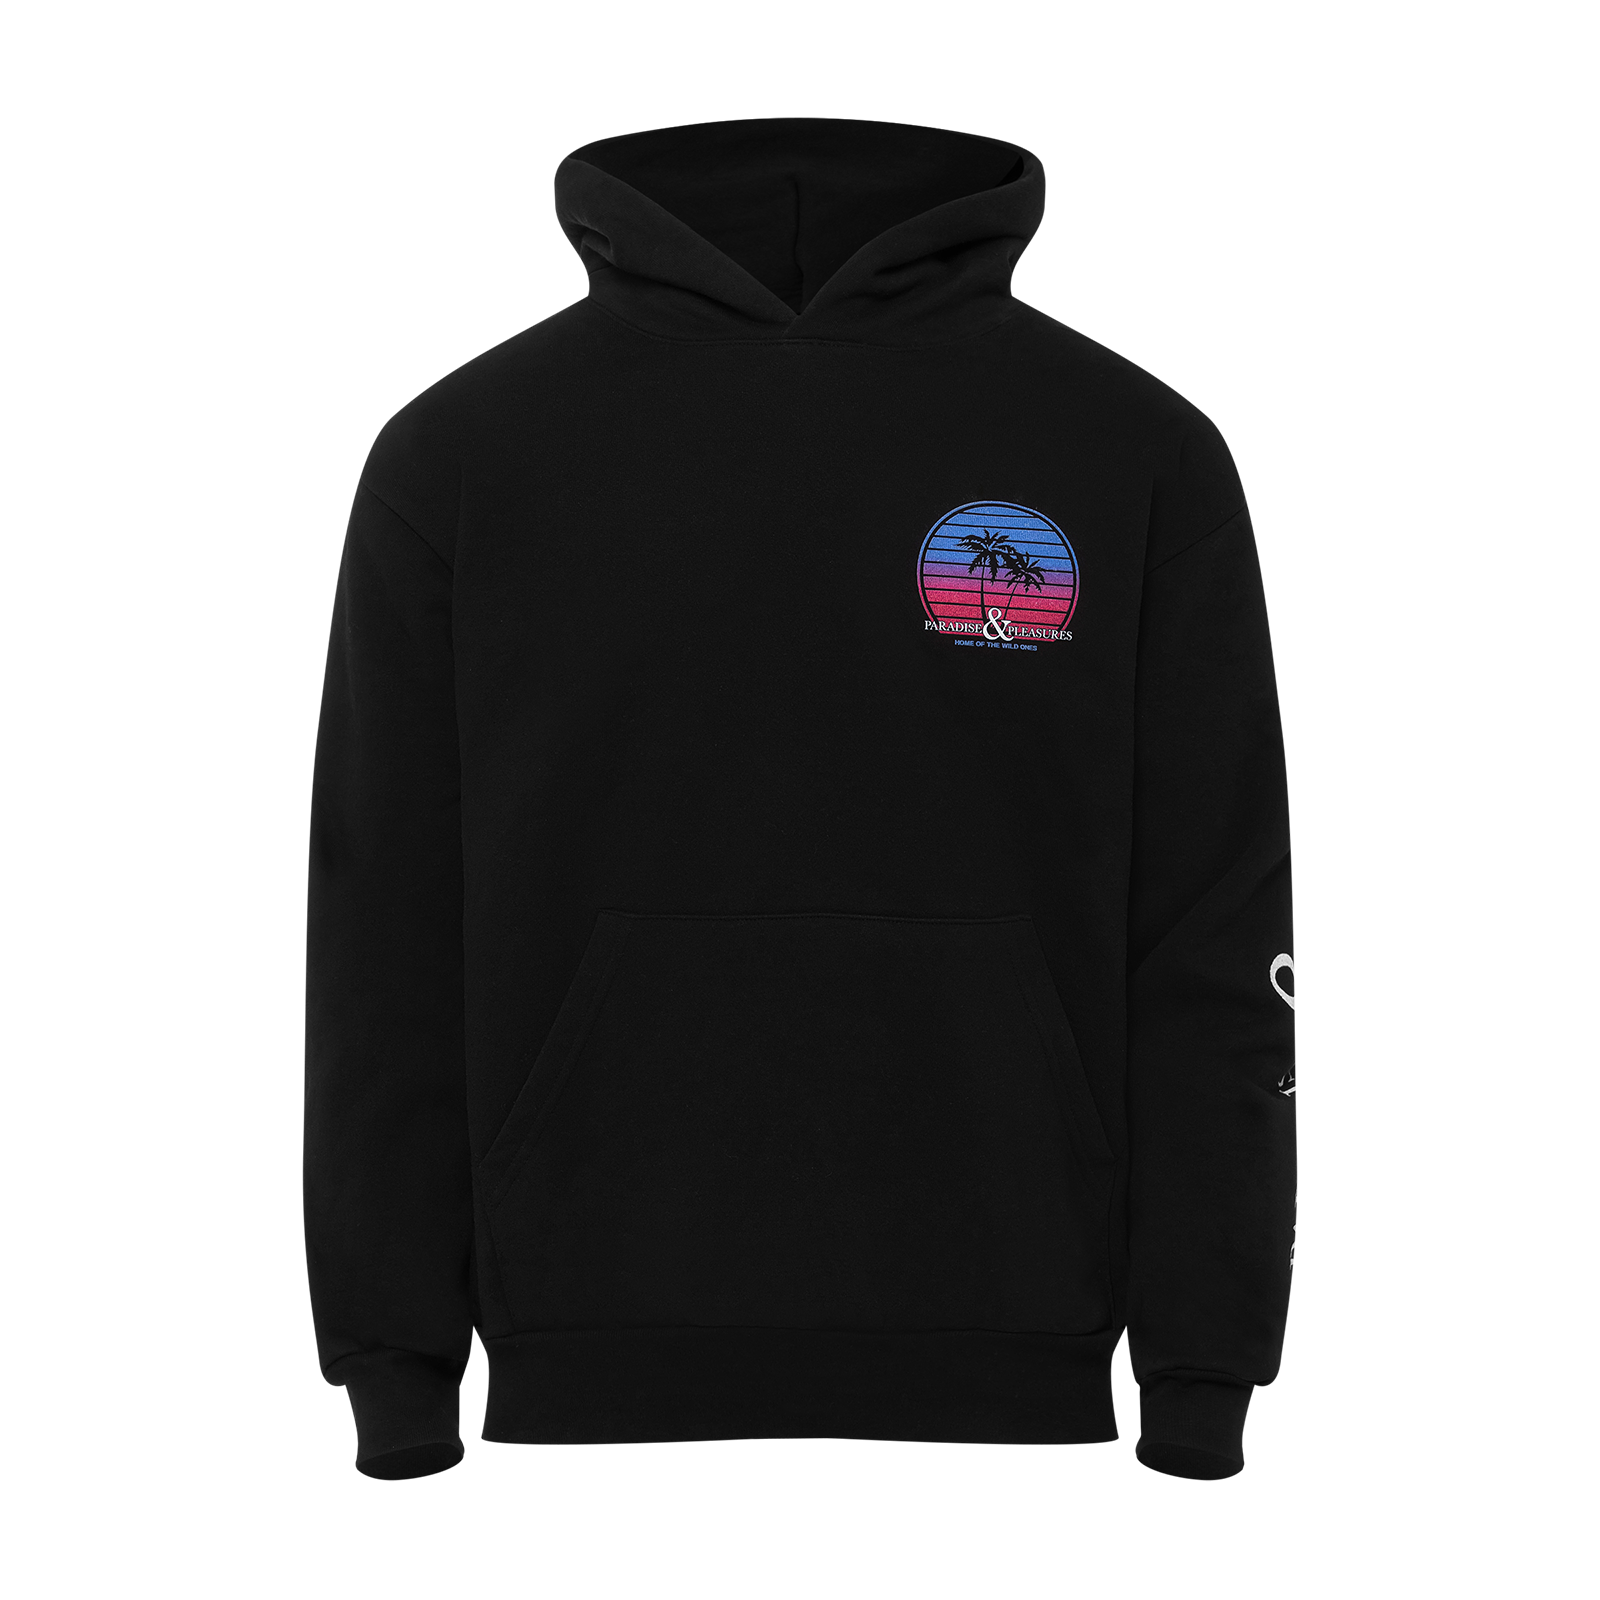 Ghost mannequin hoodie product photo